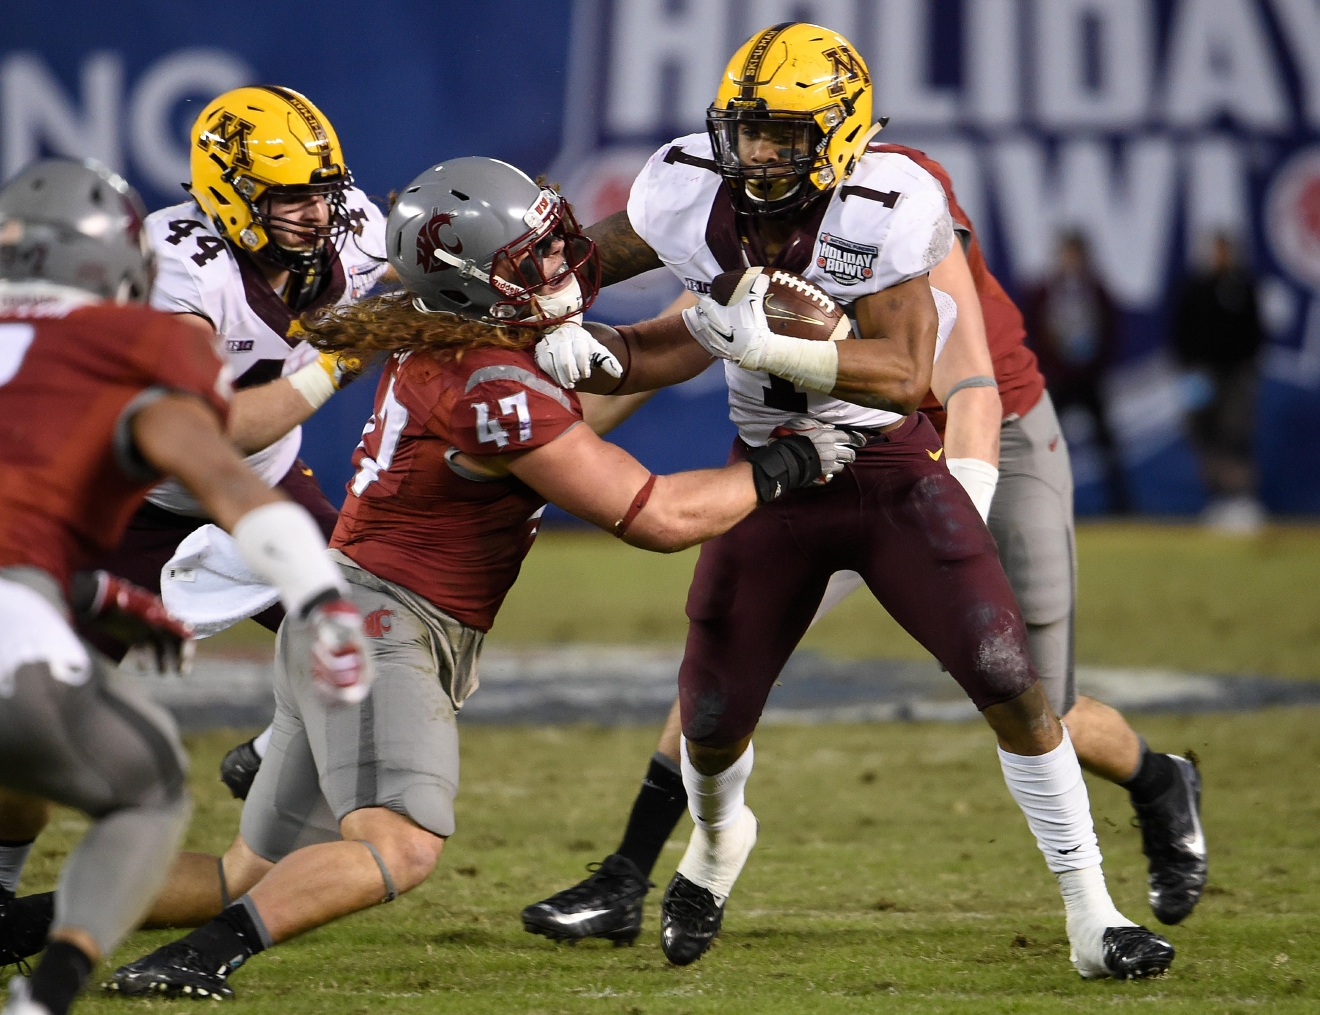 Minnesota running back Rodney Smith (1) breaks the tackle of Washington State linebacker Peyton Pelluer (47) during the first half of the Holiday Bowl NCAA college football game, Tuesday, Dec. 27, 2016, in San Diego. (AP Photo/Denis Poroy)